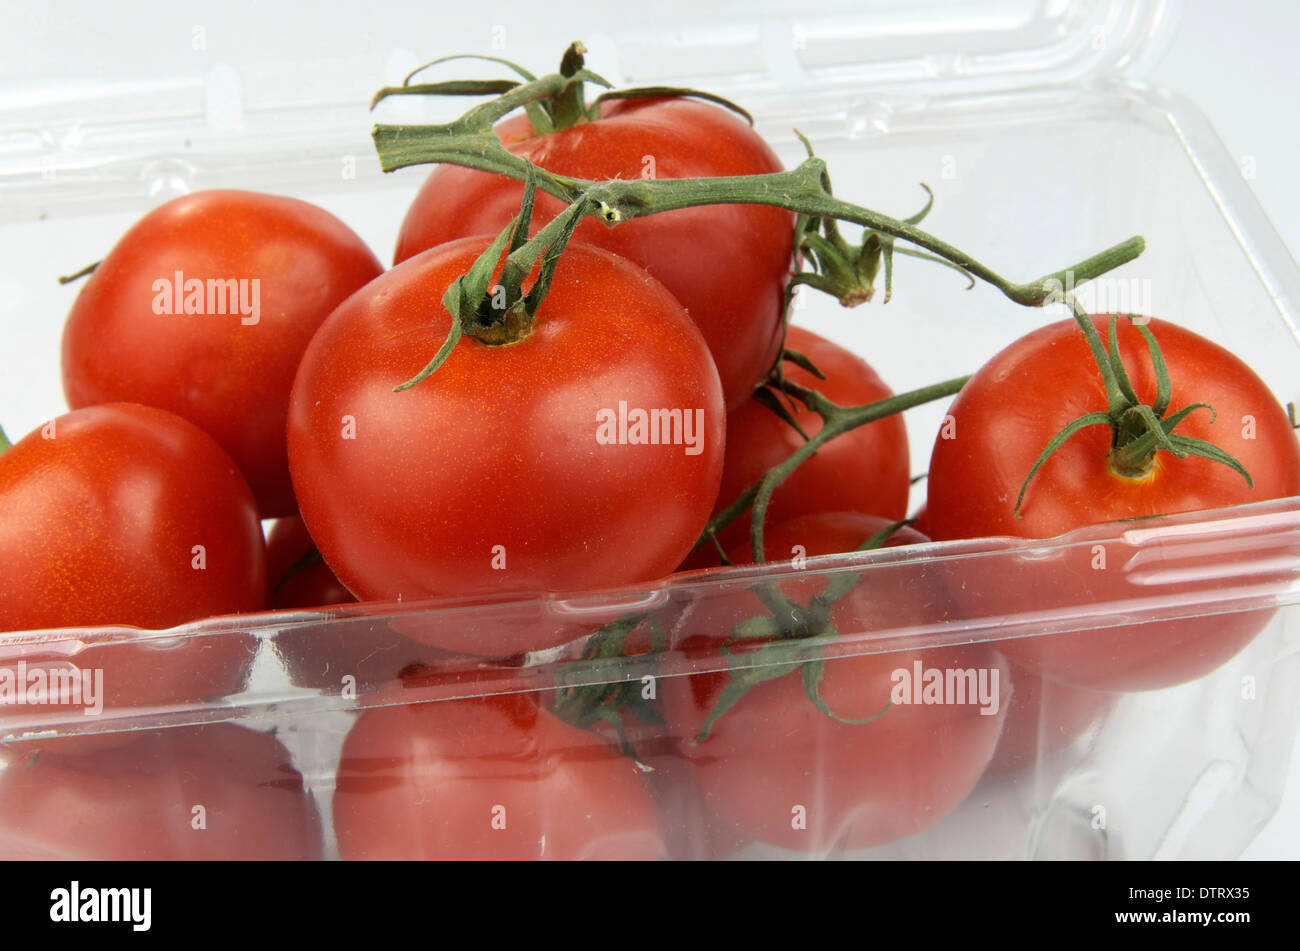 Vine tomatoes in plastic container. - Stock Image